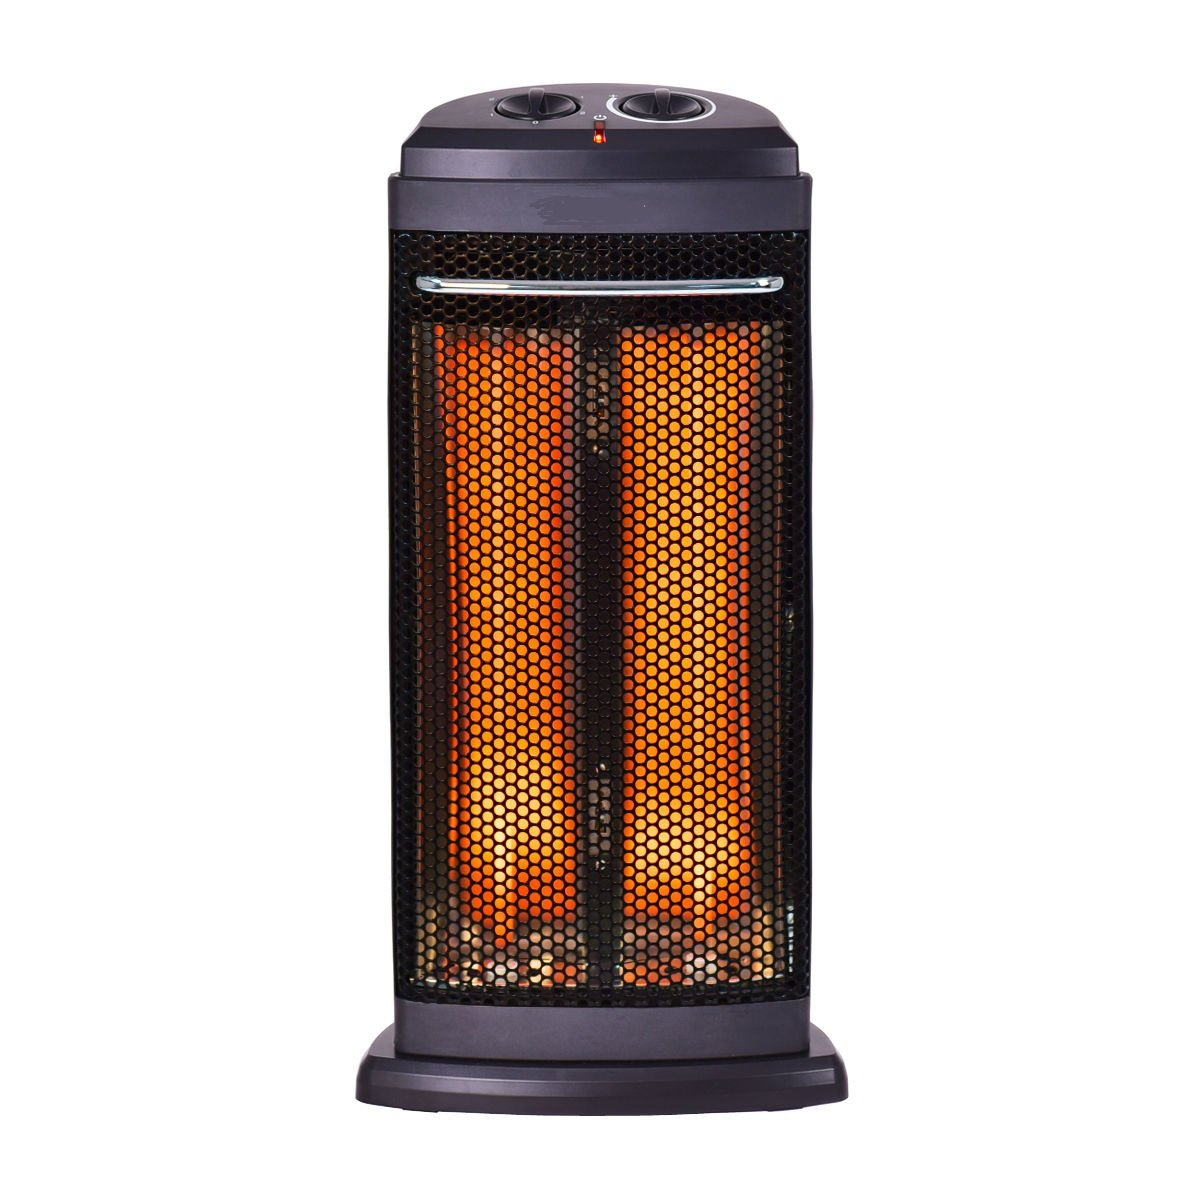 onEveryBaby Electric Space Heater -1500W Infrared Tower Heater Fan with 3 Heat Settings, Thermostat Remote Control Timer, Overheat Tip-Over Shut Off Protection, for Indoor Room Use